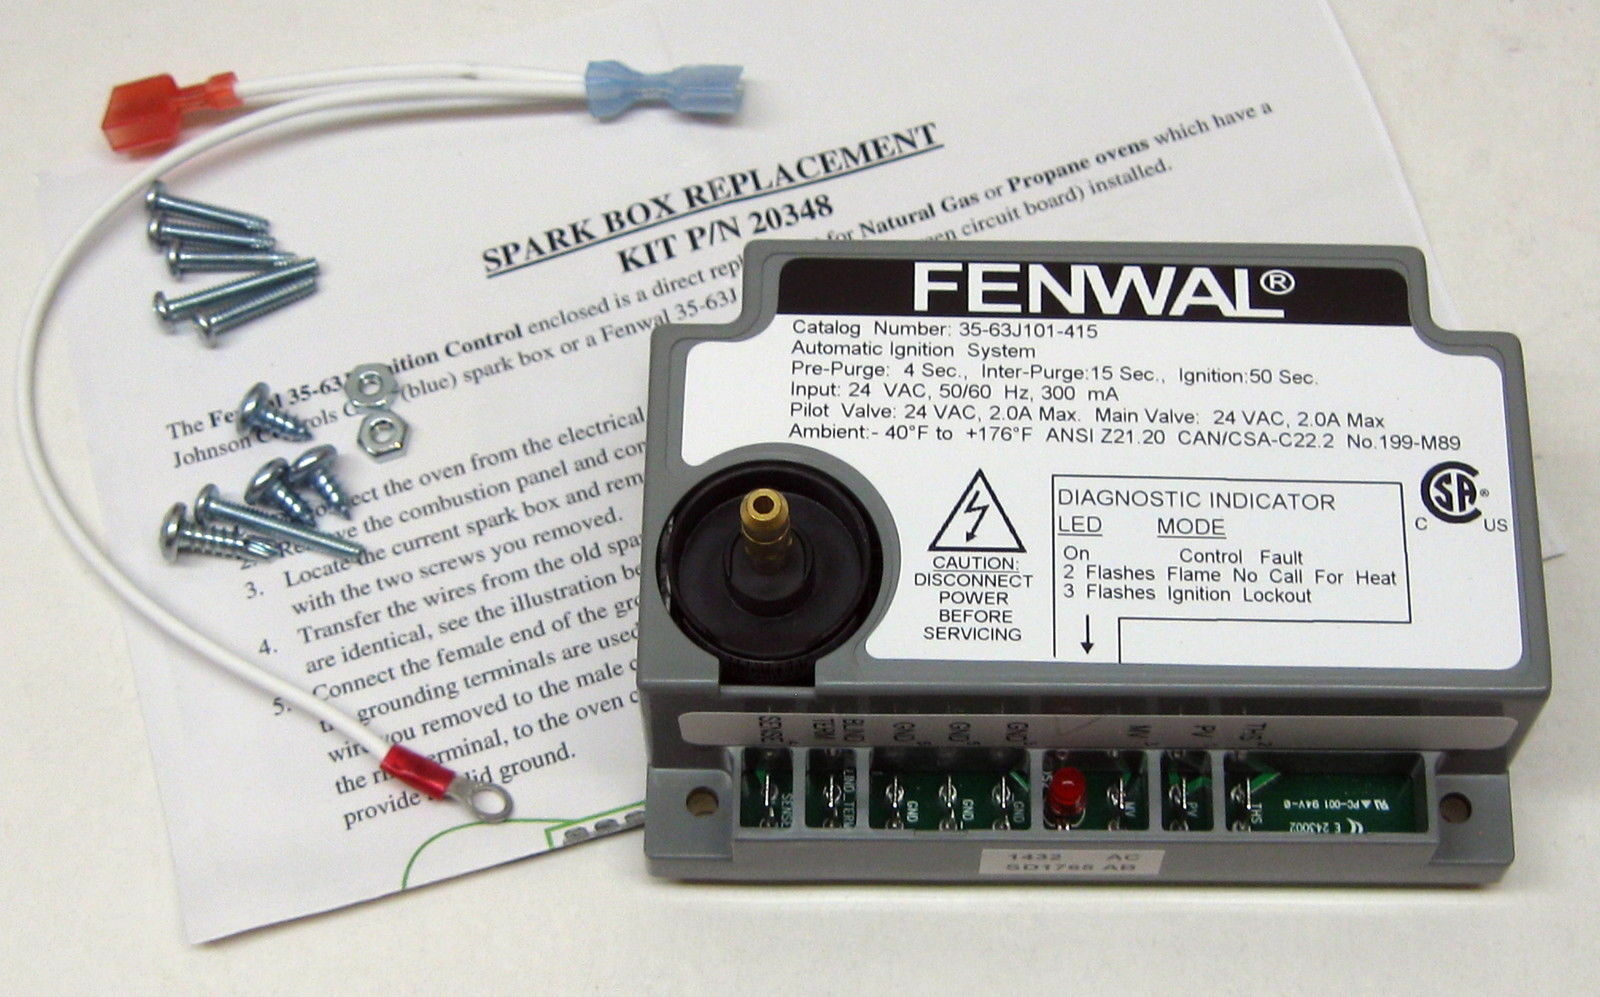 Spark Board For Blodgett 20348 Same Day Shipping 12989 Picclick Fenwal Automatic Ignition Module Wiring Diagram 1 Of 6free